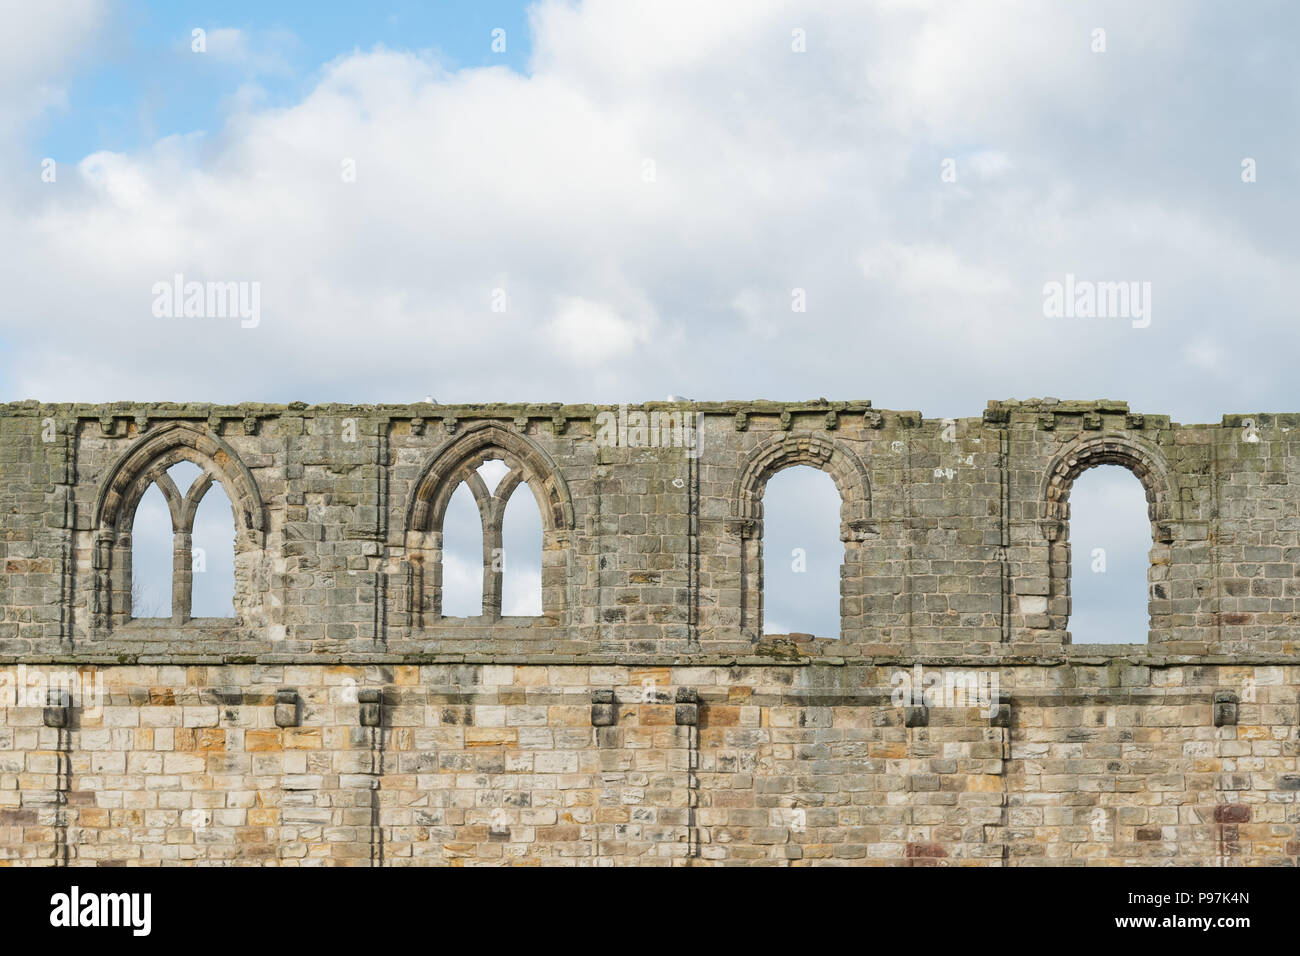 Change in building styles during cathedral construction - different window styles in south wall of St Andrews Cathedral, Scotland, UK - Stock Image